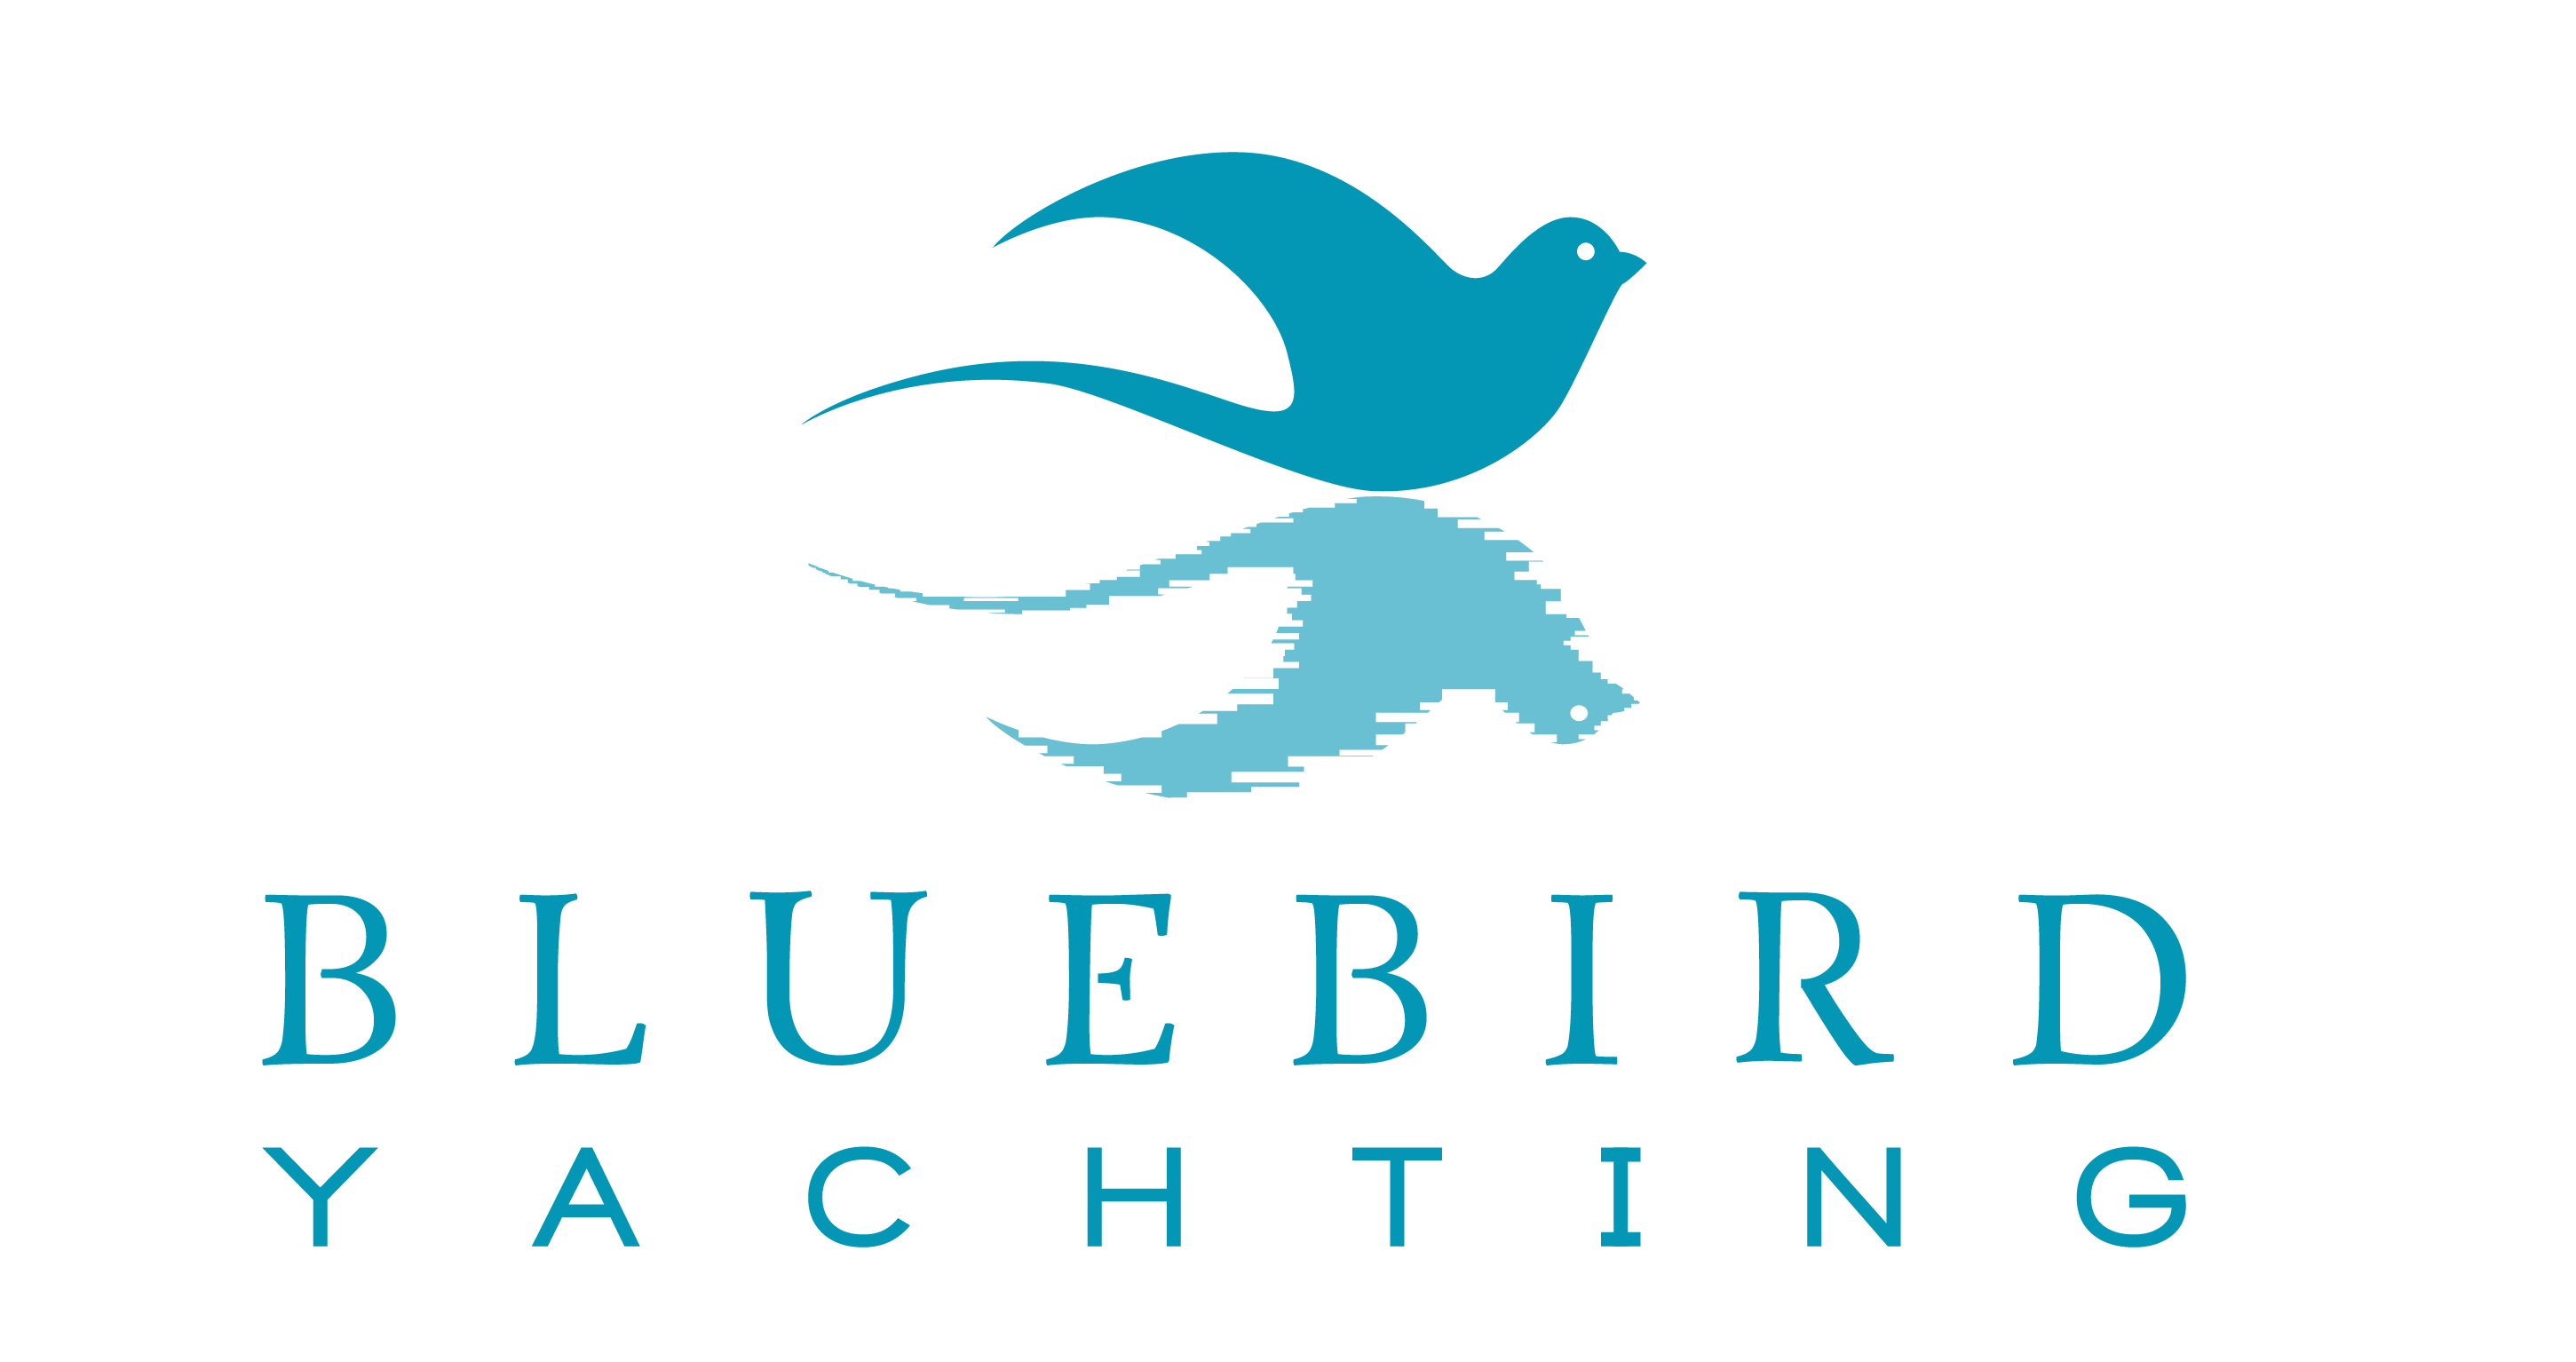 Bluebird Yachting | Sardinien | Bluebird Yachting